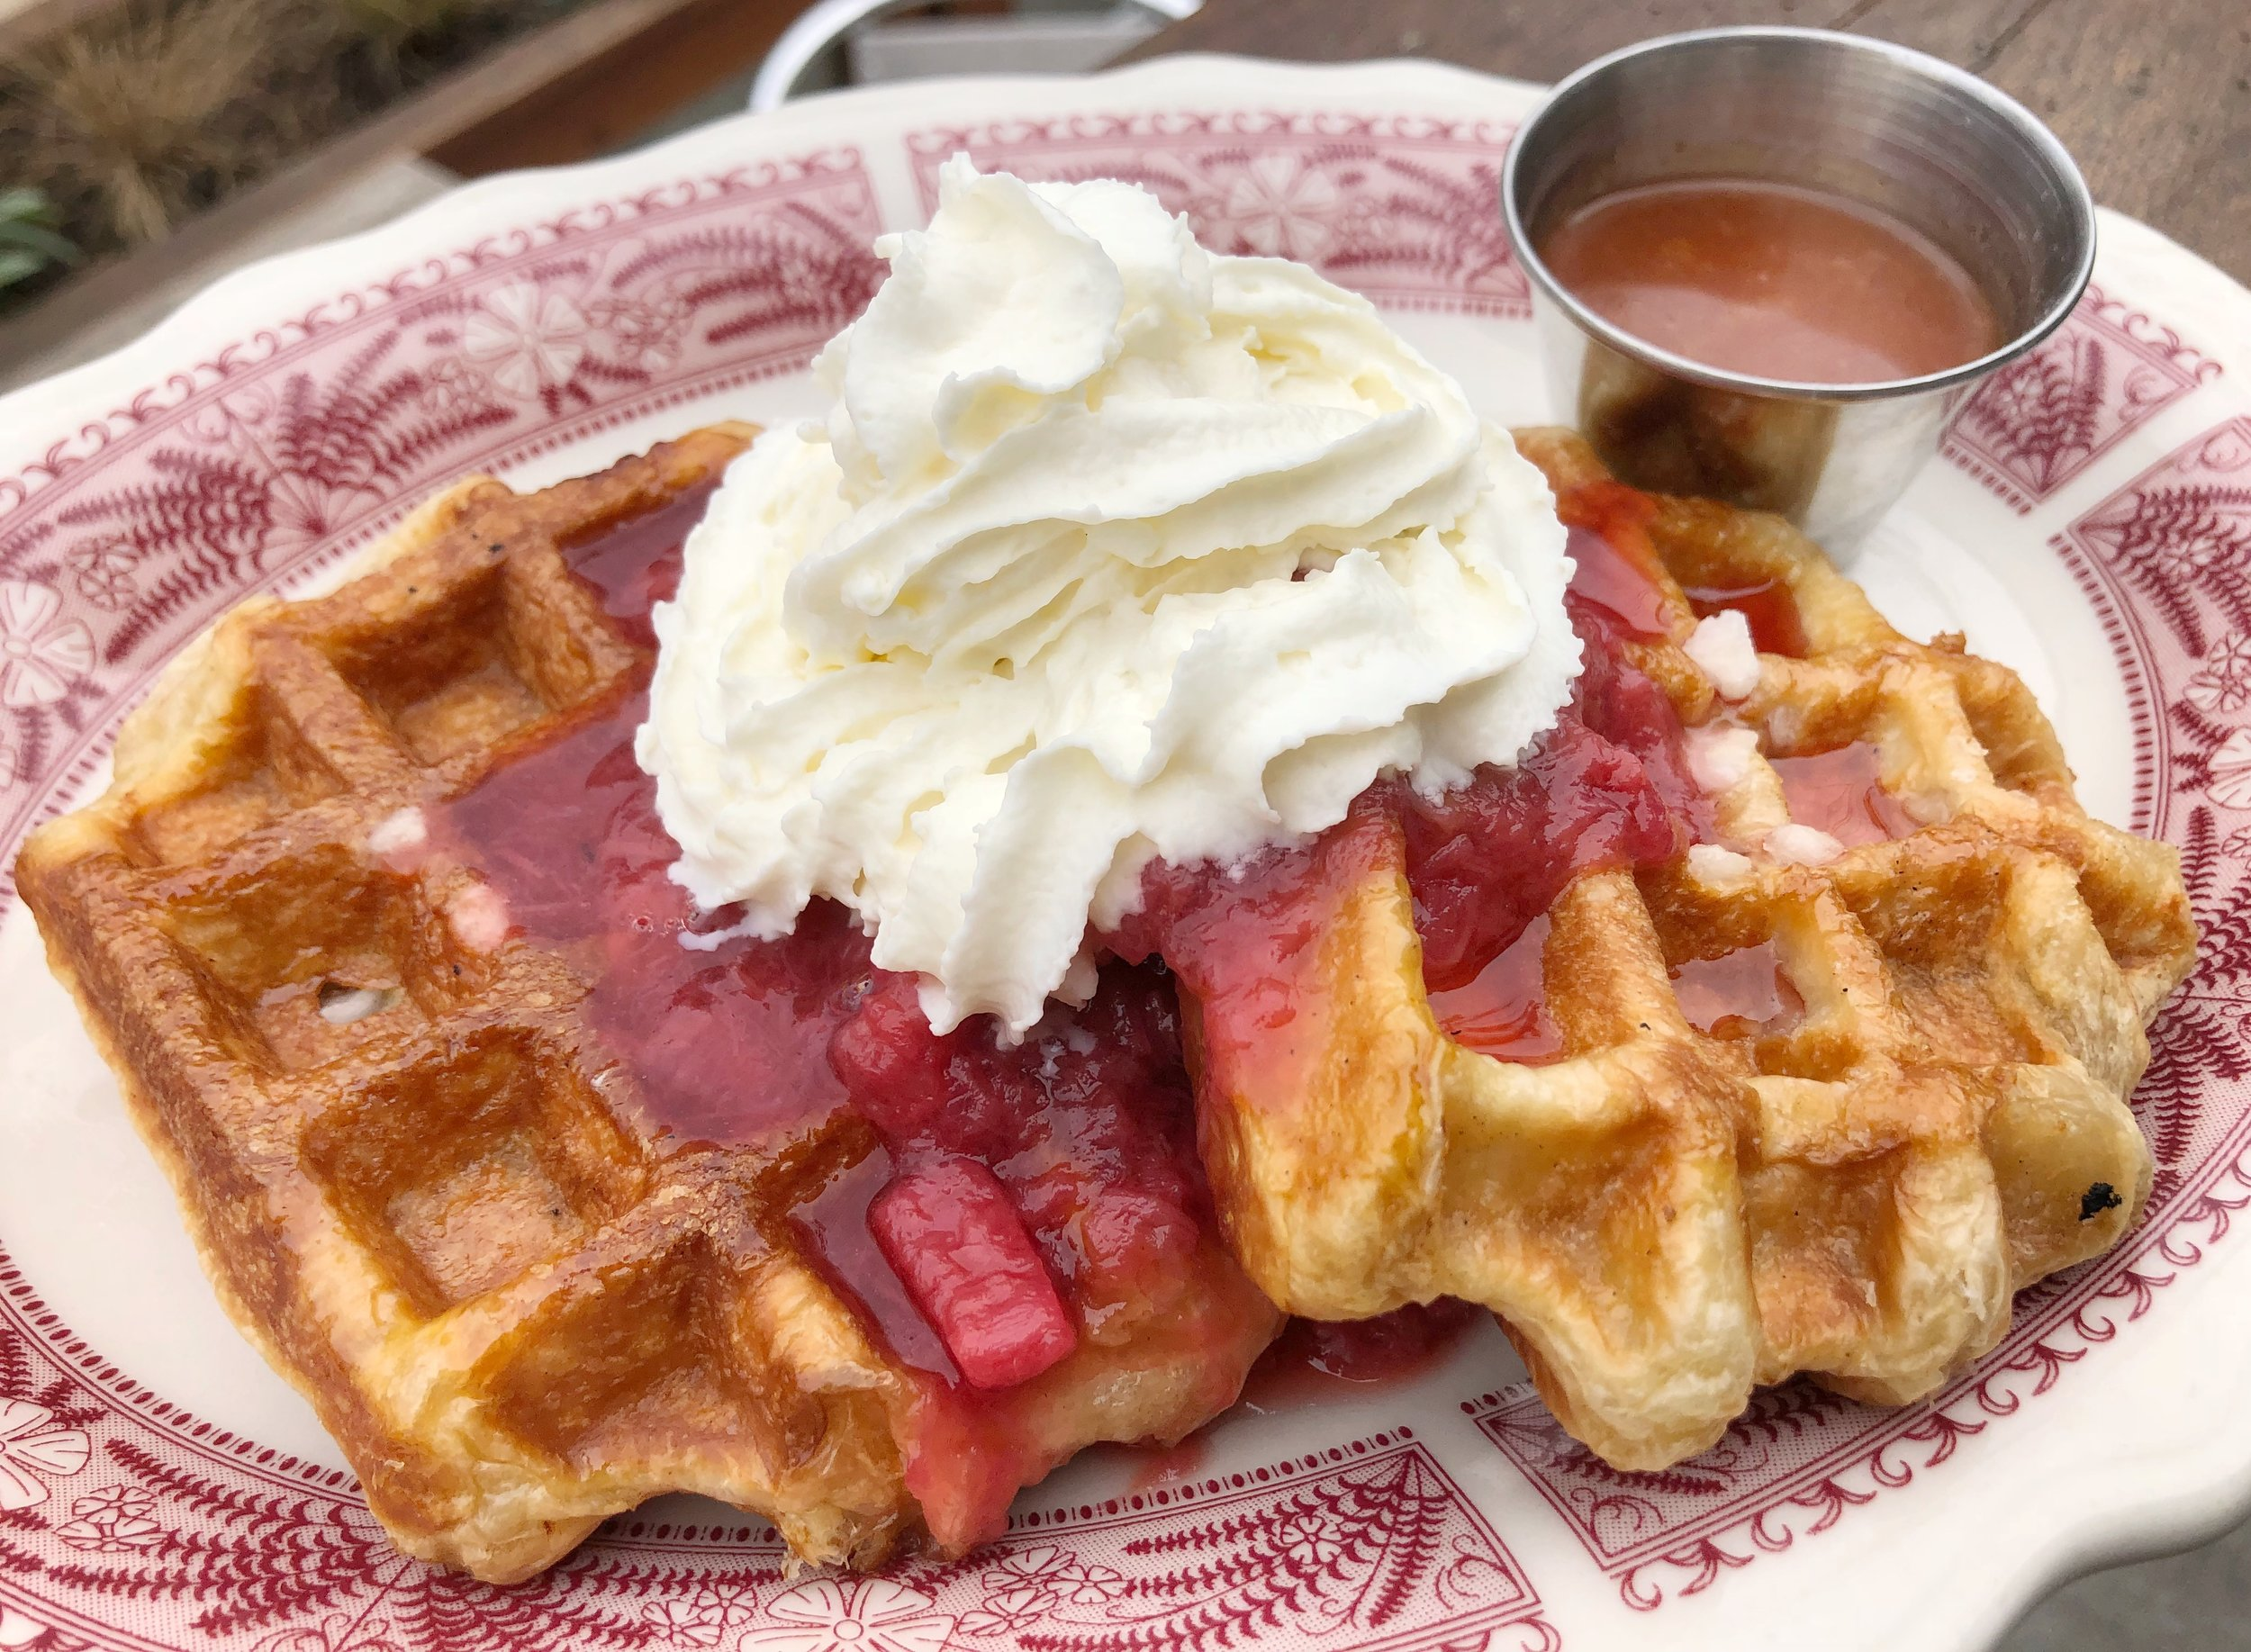 Waffles with Fruit - two waffles, fruit compote, whip